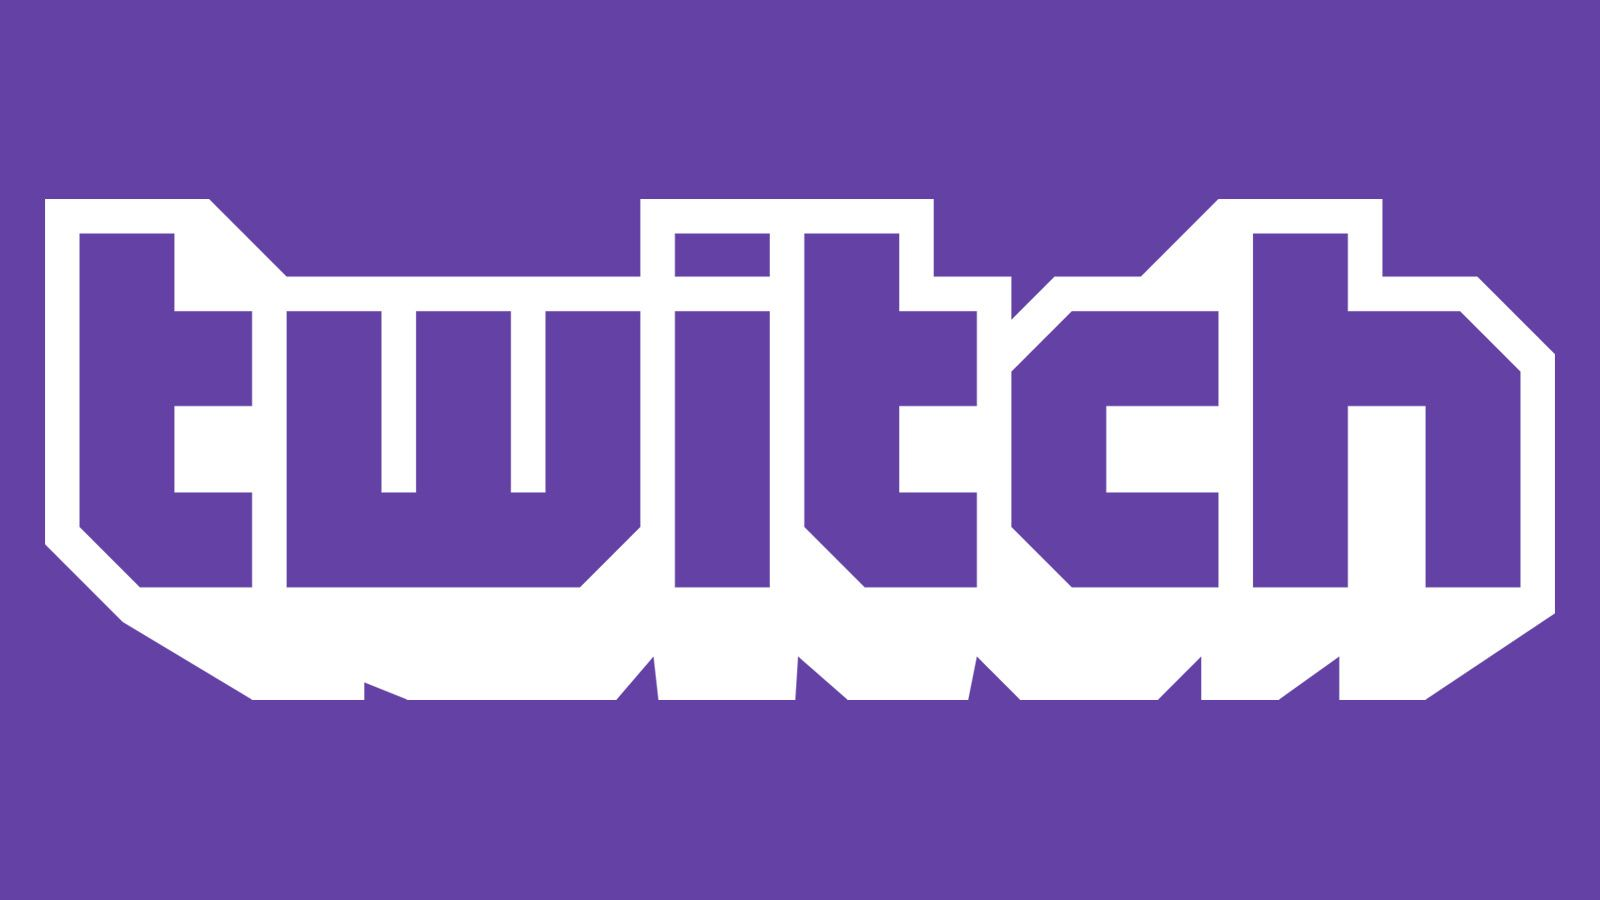 1600x900 2016 Twitch HDQ Wallpapers, High Quality Backgrounds #25JOS